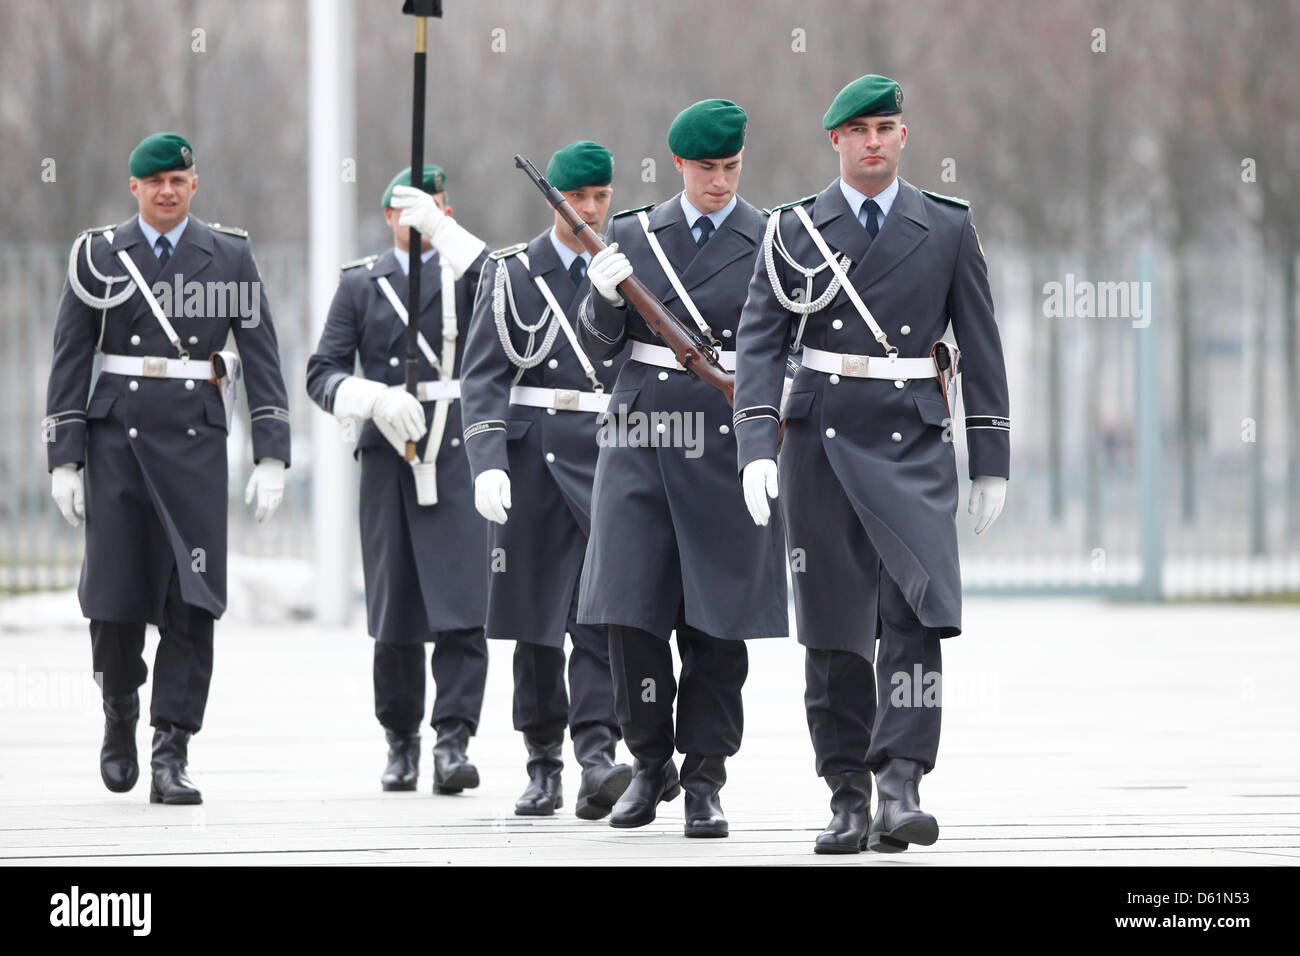 Berlin, 11 April 2013. Greeting of the Indian Prime Minister Manmohan Singh with military honors by German Chancellor - Stock Image